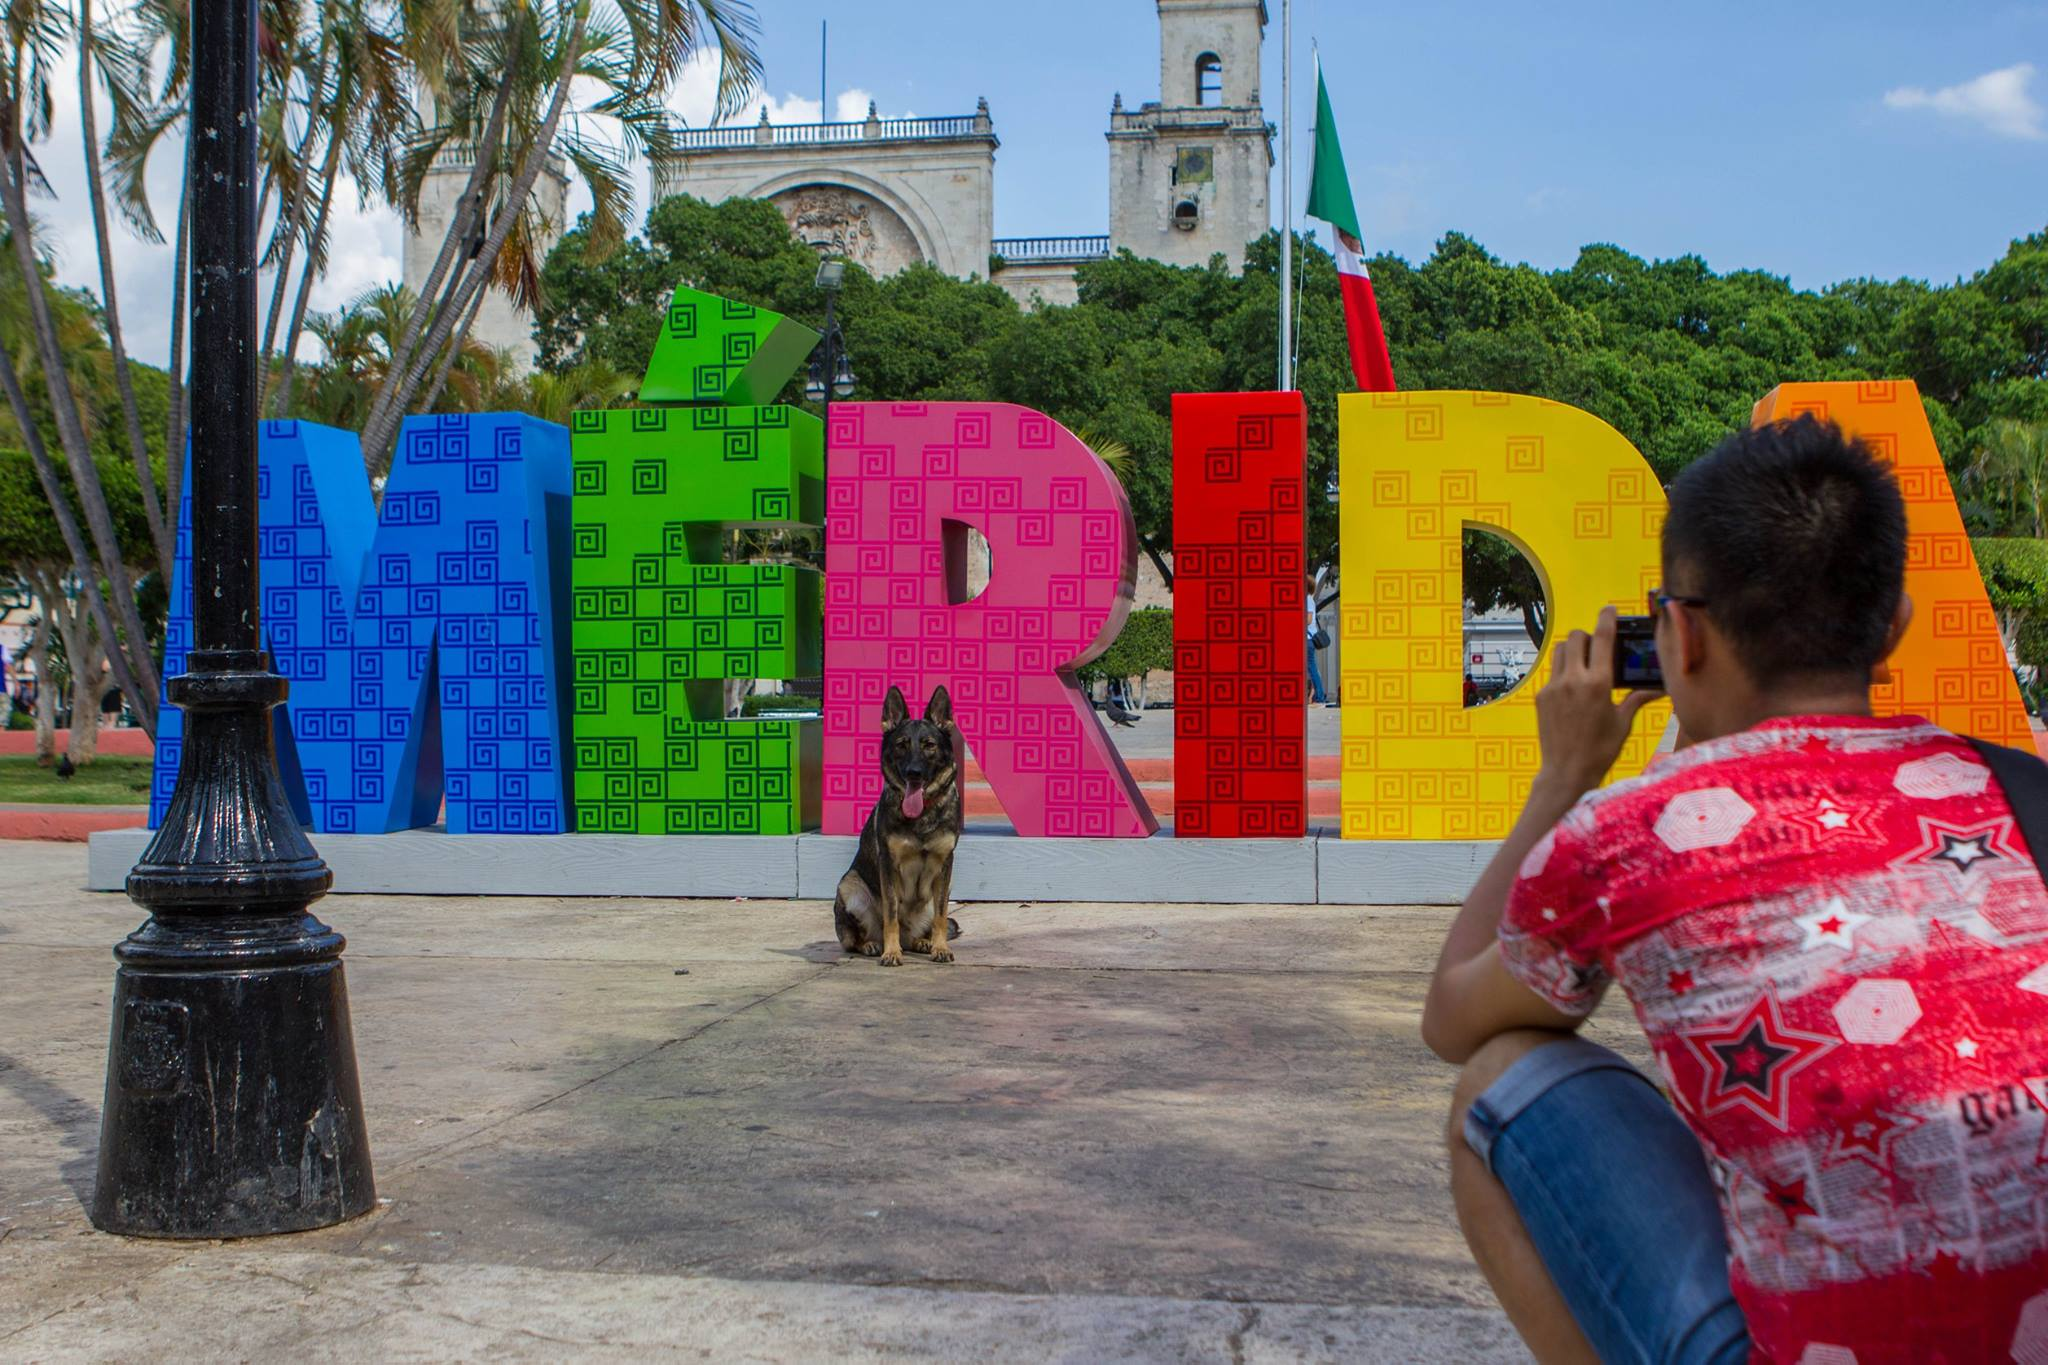 Karma posing for everyone.